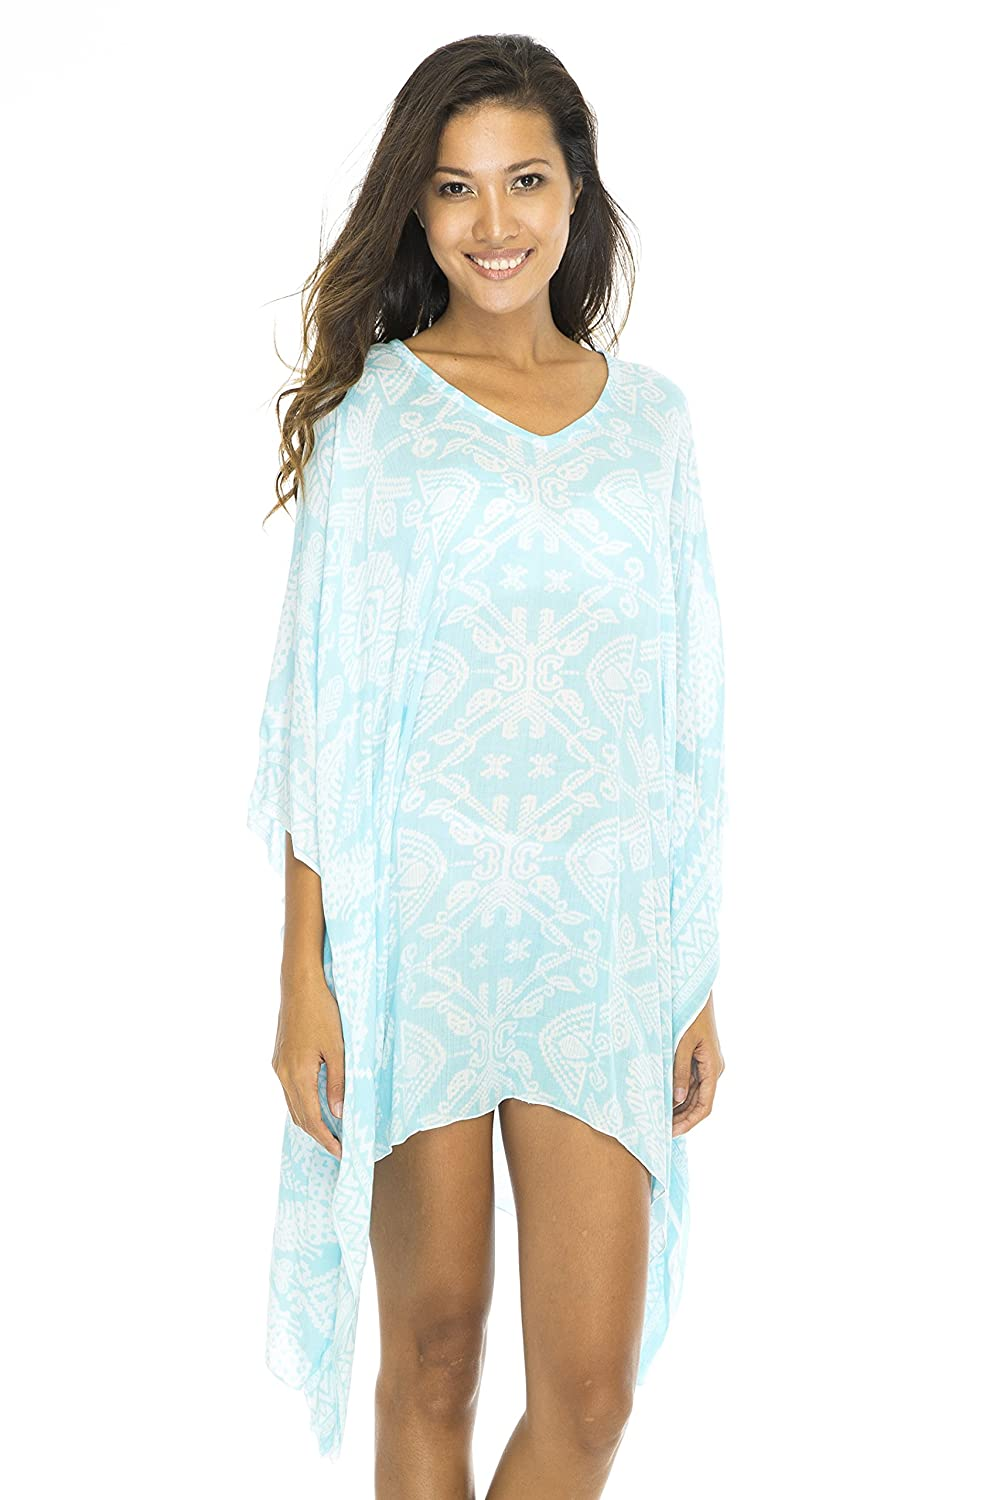 acd328d5f7 100% Rayon Exotic ikat tile print creates an enticing island vibe on this  Short Bikini Swim Caftan Poncho; traditional Indonesian design makes an ...